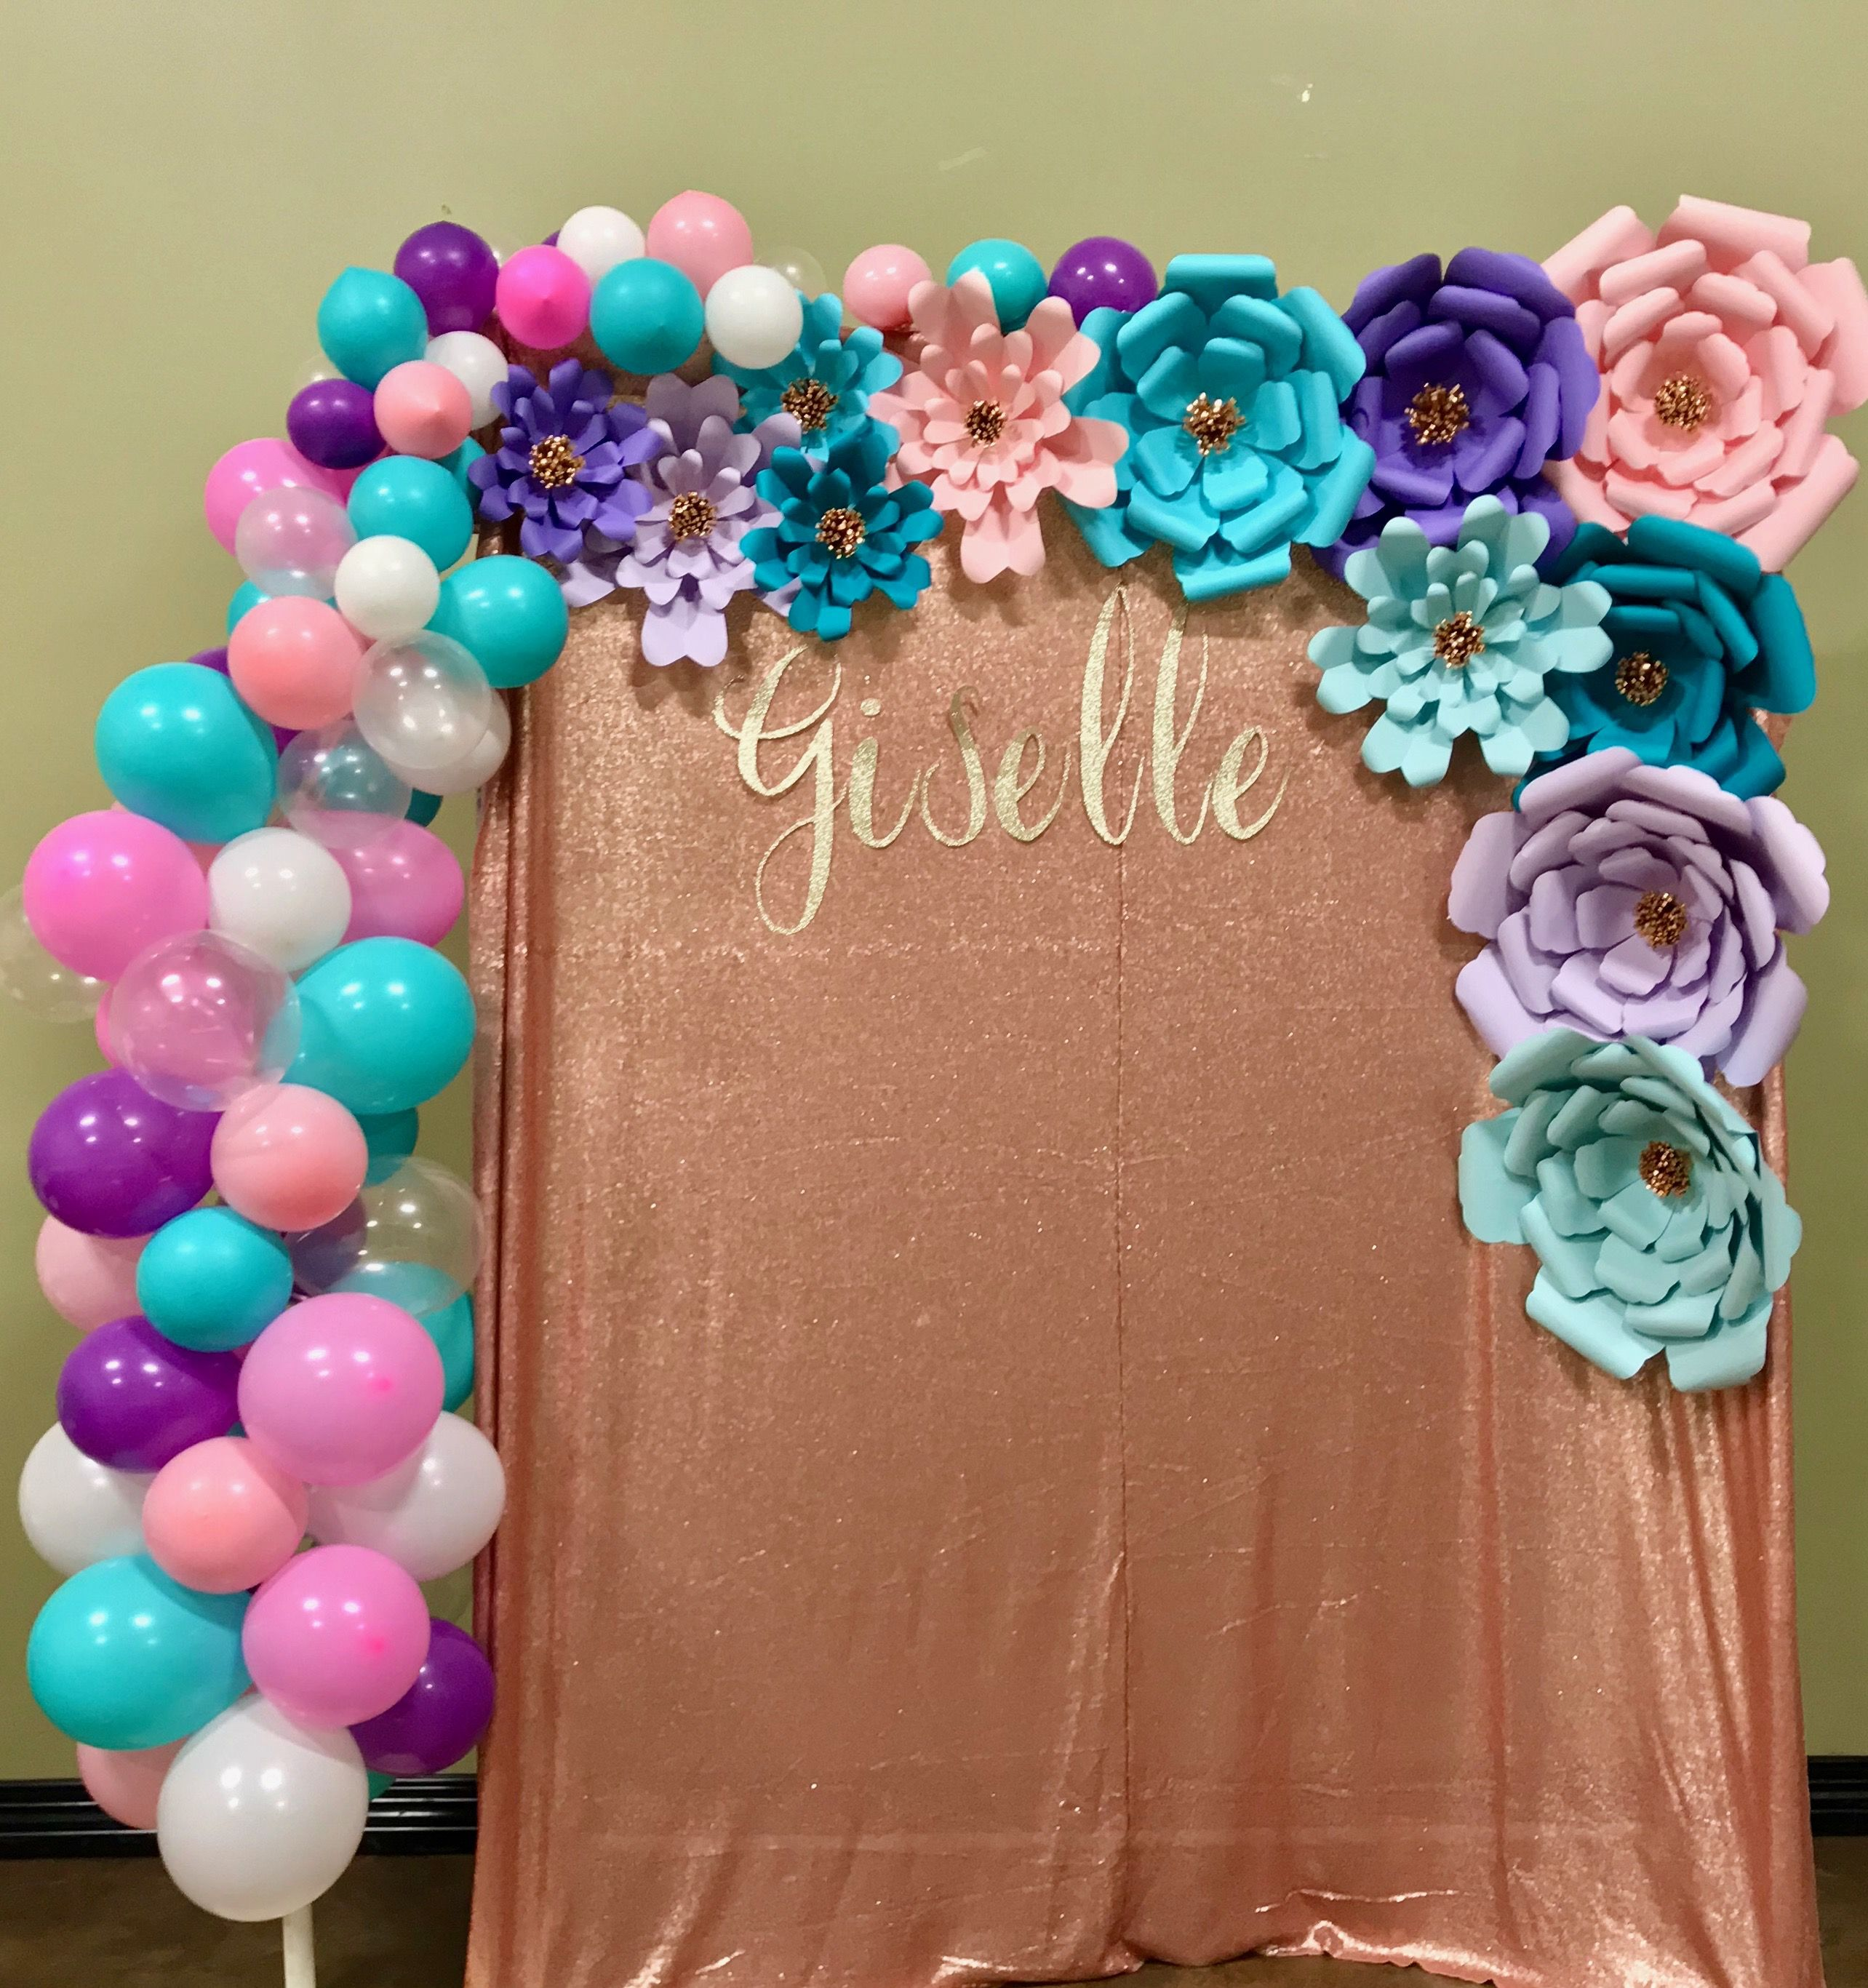 Photo Backdrop With Paper Flowers And Balloons Paper Flowers Balloons Paper Flower Decor